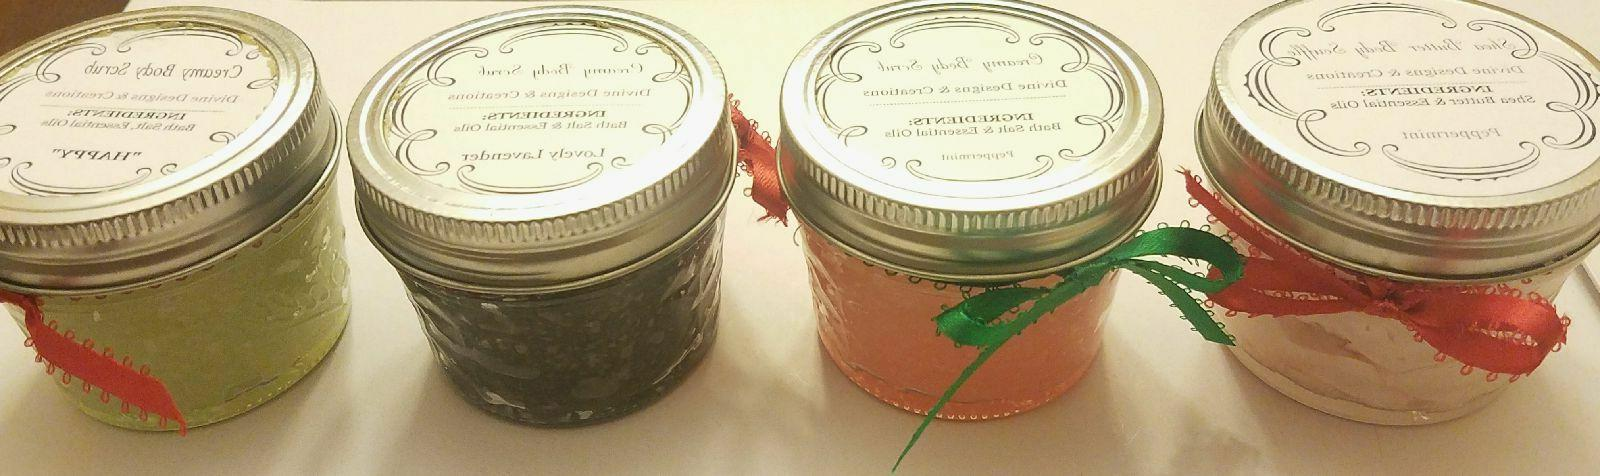 Whipped Organic Body Souffle! Choose